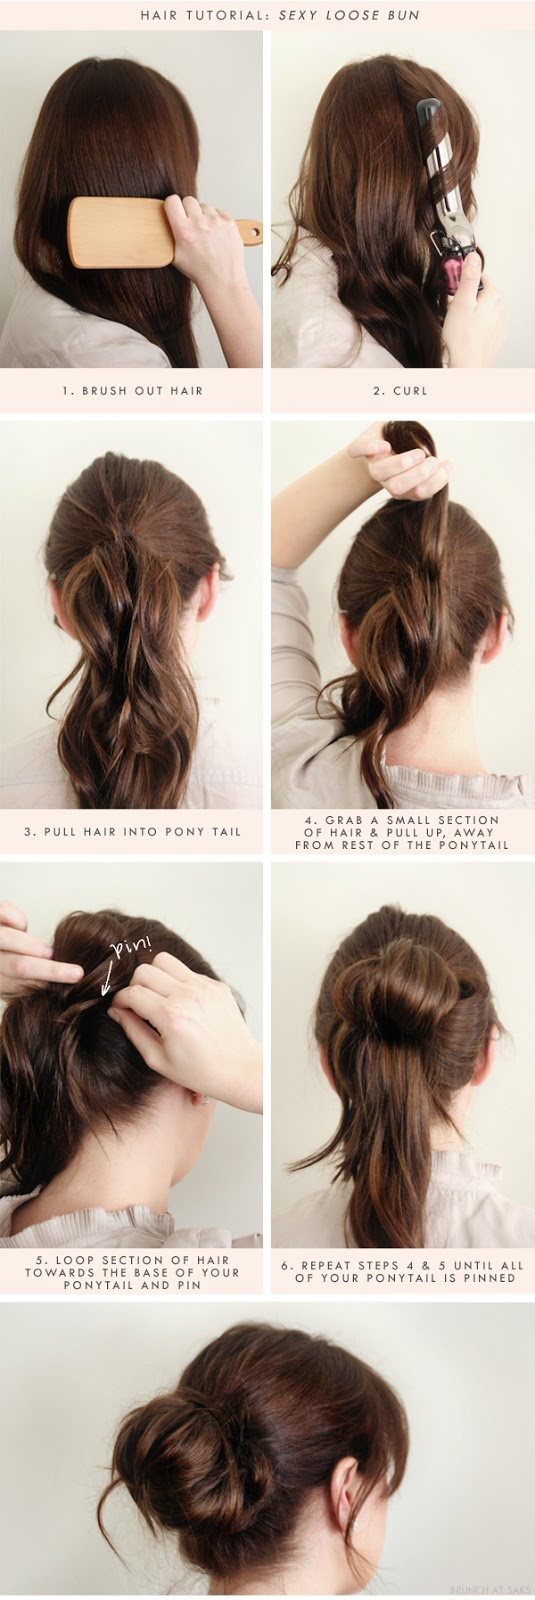 . Sexy Loose hair buns for Anybody Lazy Days!